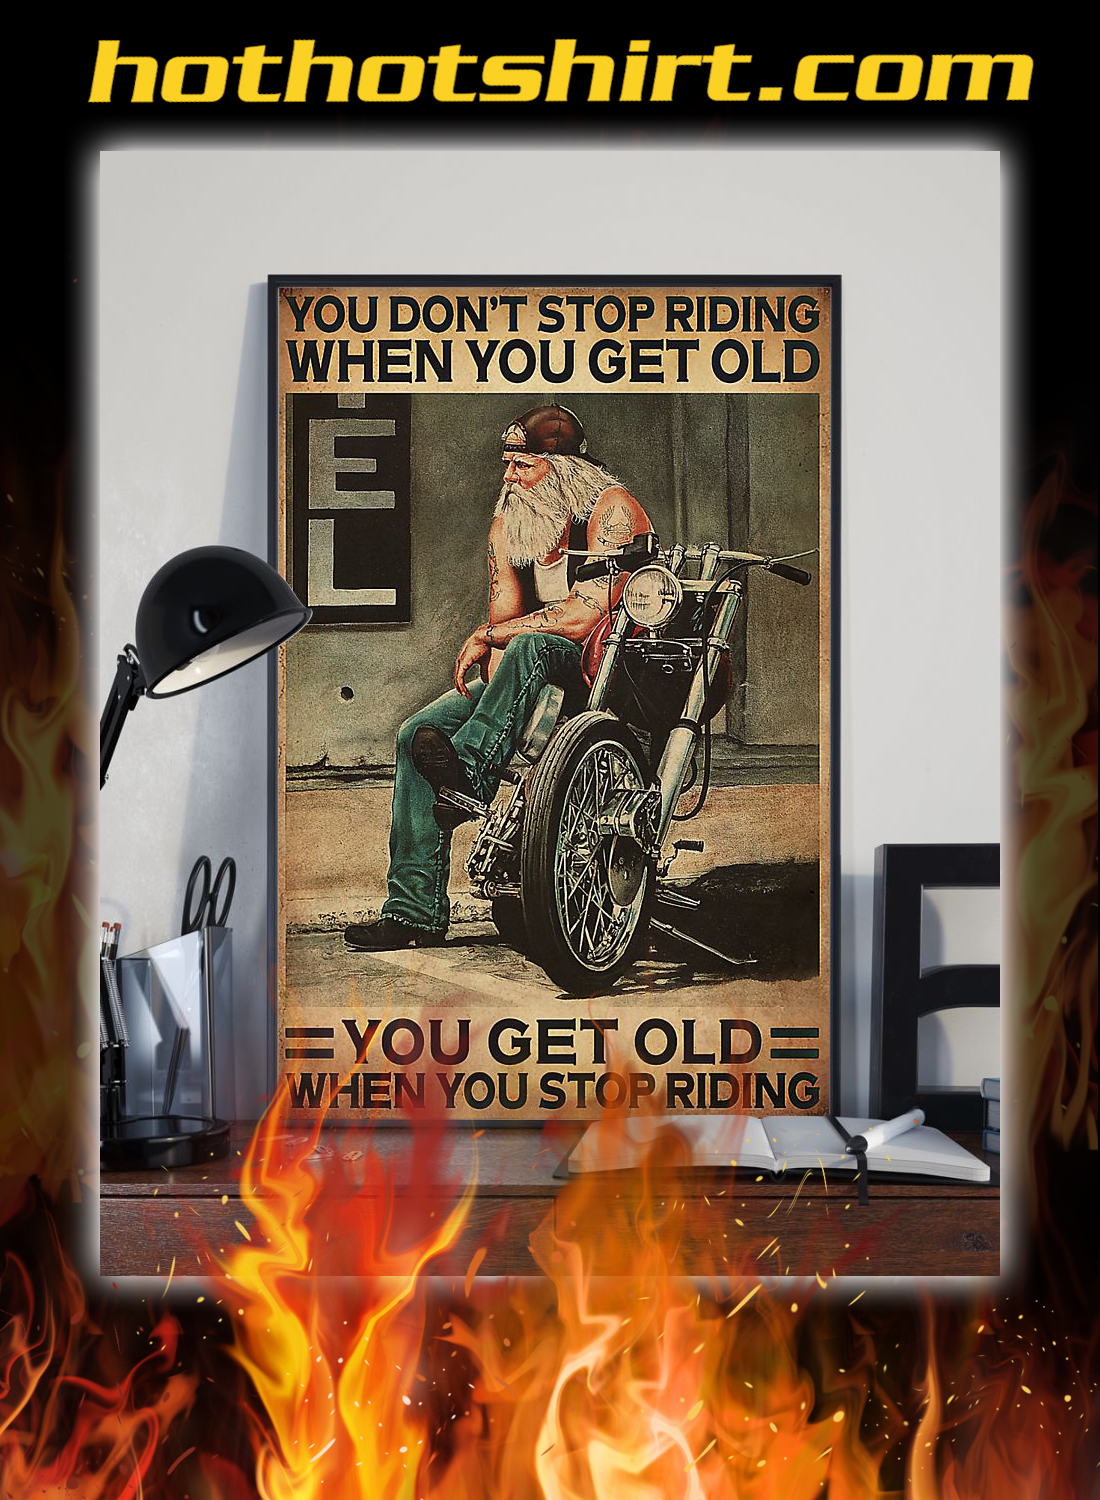 Motorcycle You don't stop riding when you get old poster 2